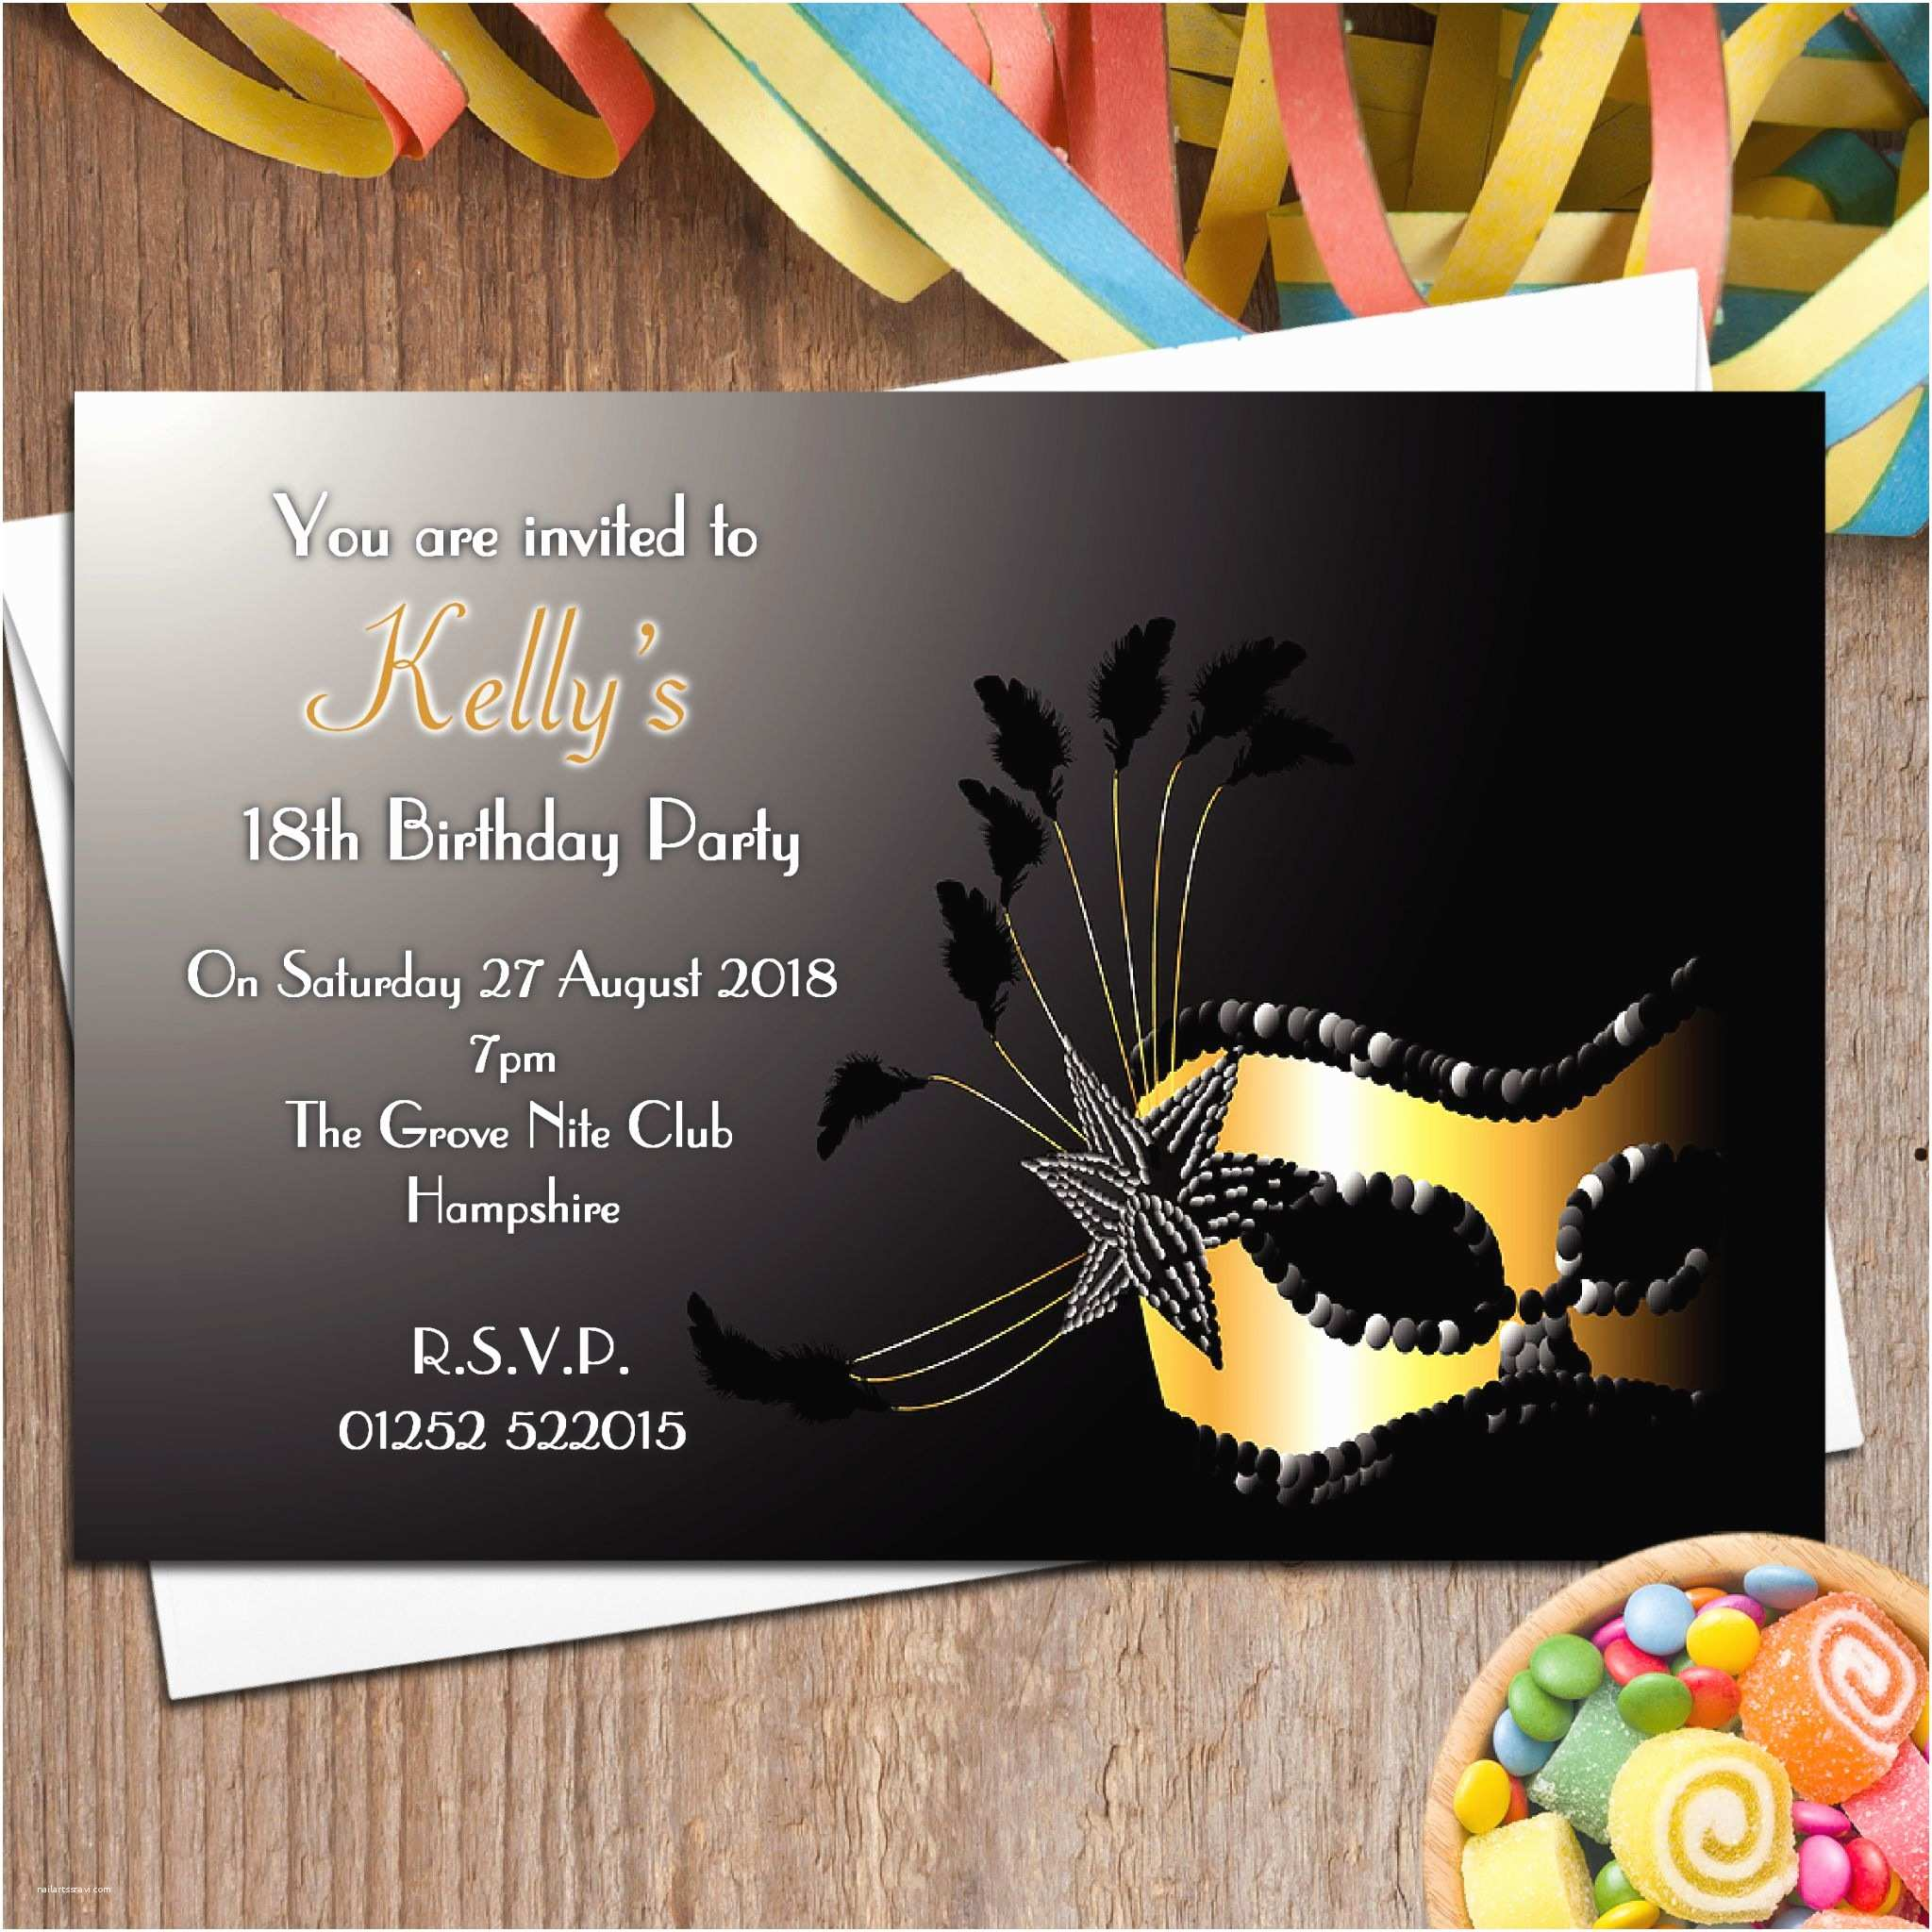 Masquerade Party Invitations 10 Personalised Masquerade Mask Party Invitations N94